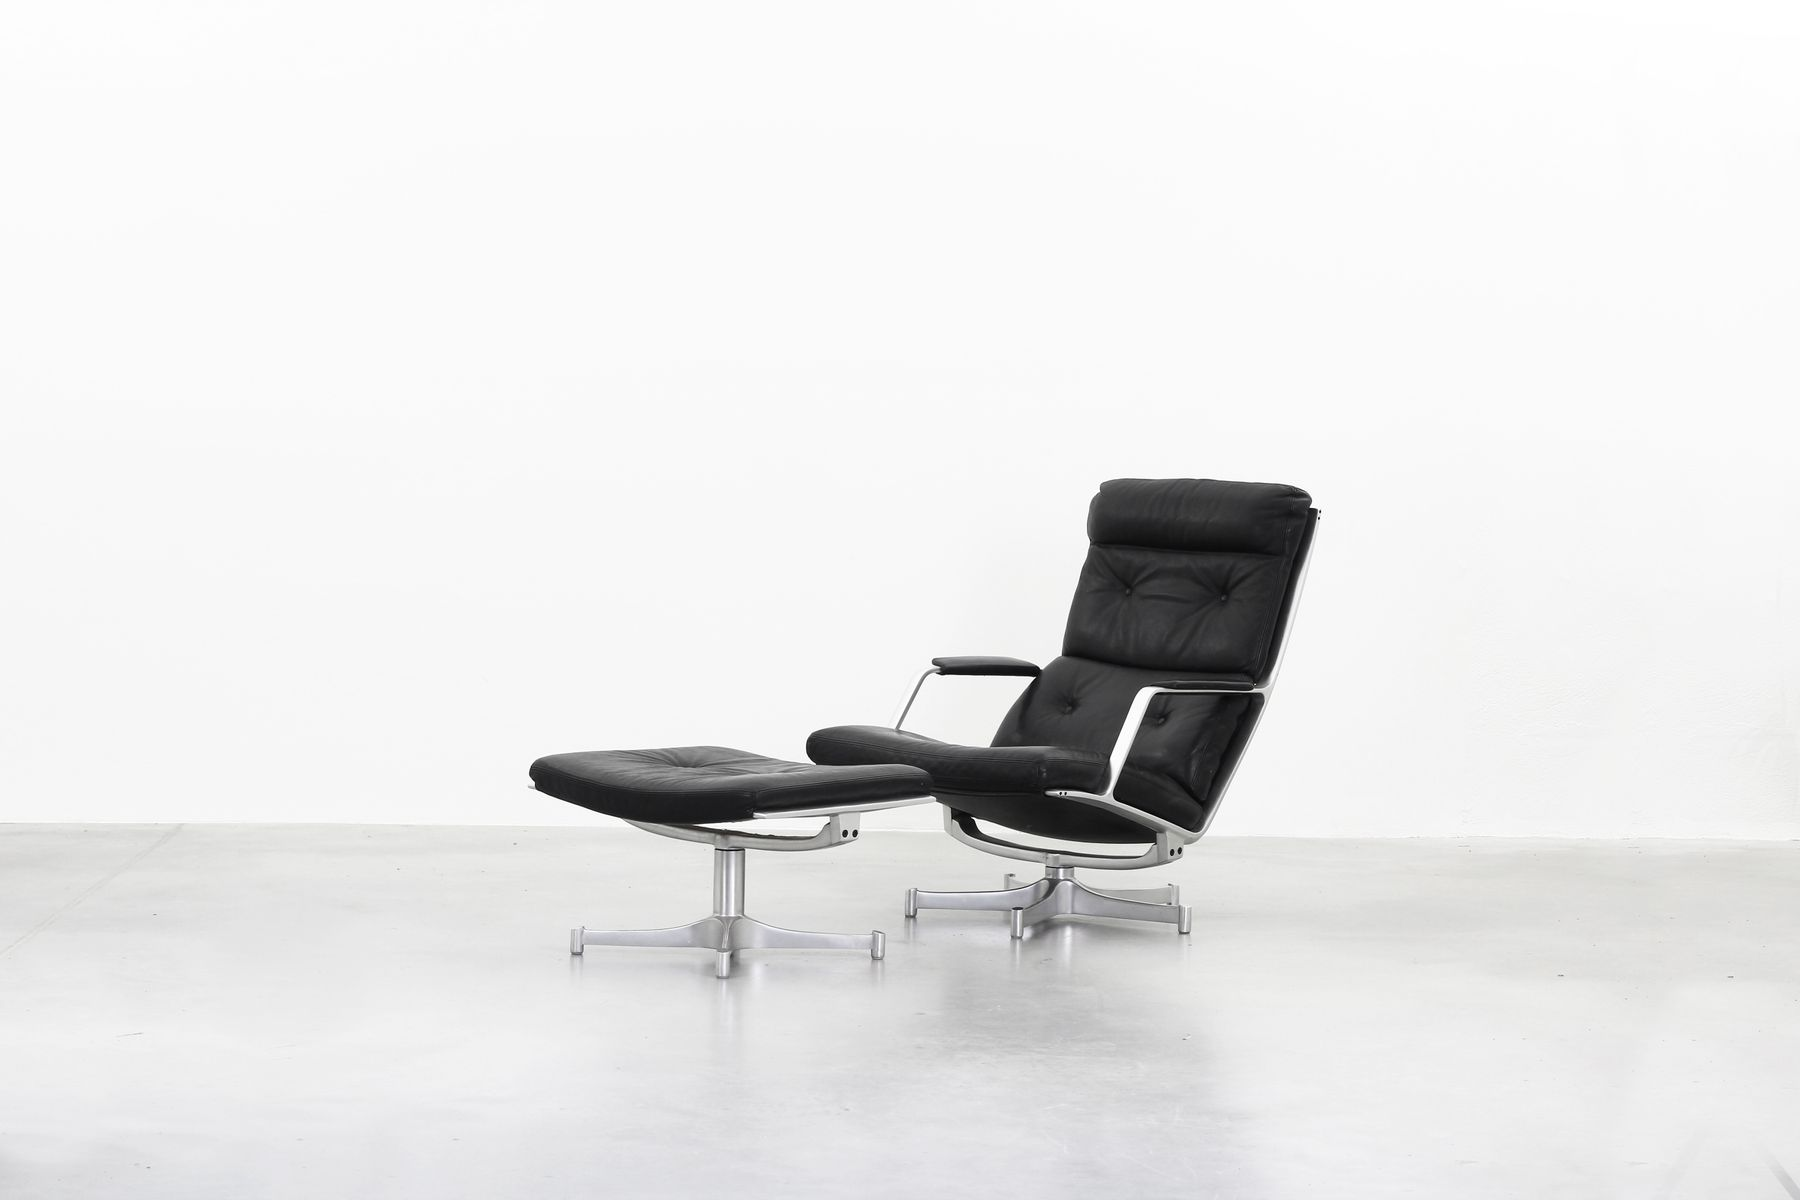 Fk85 Lounge Chair Ottoman Set By Fabricius Kastholm For Kill International 1968